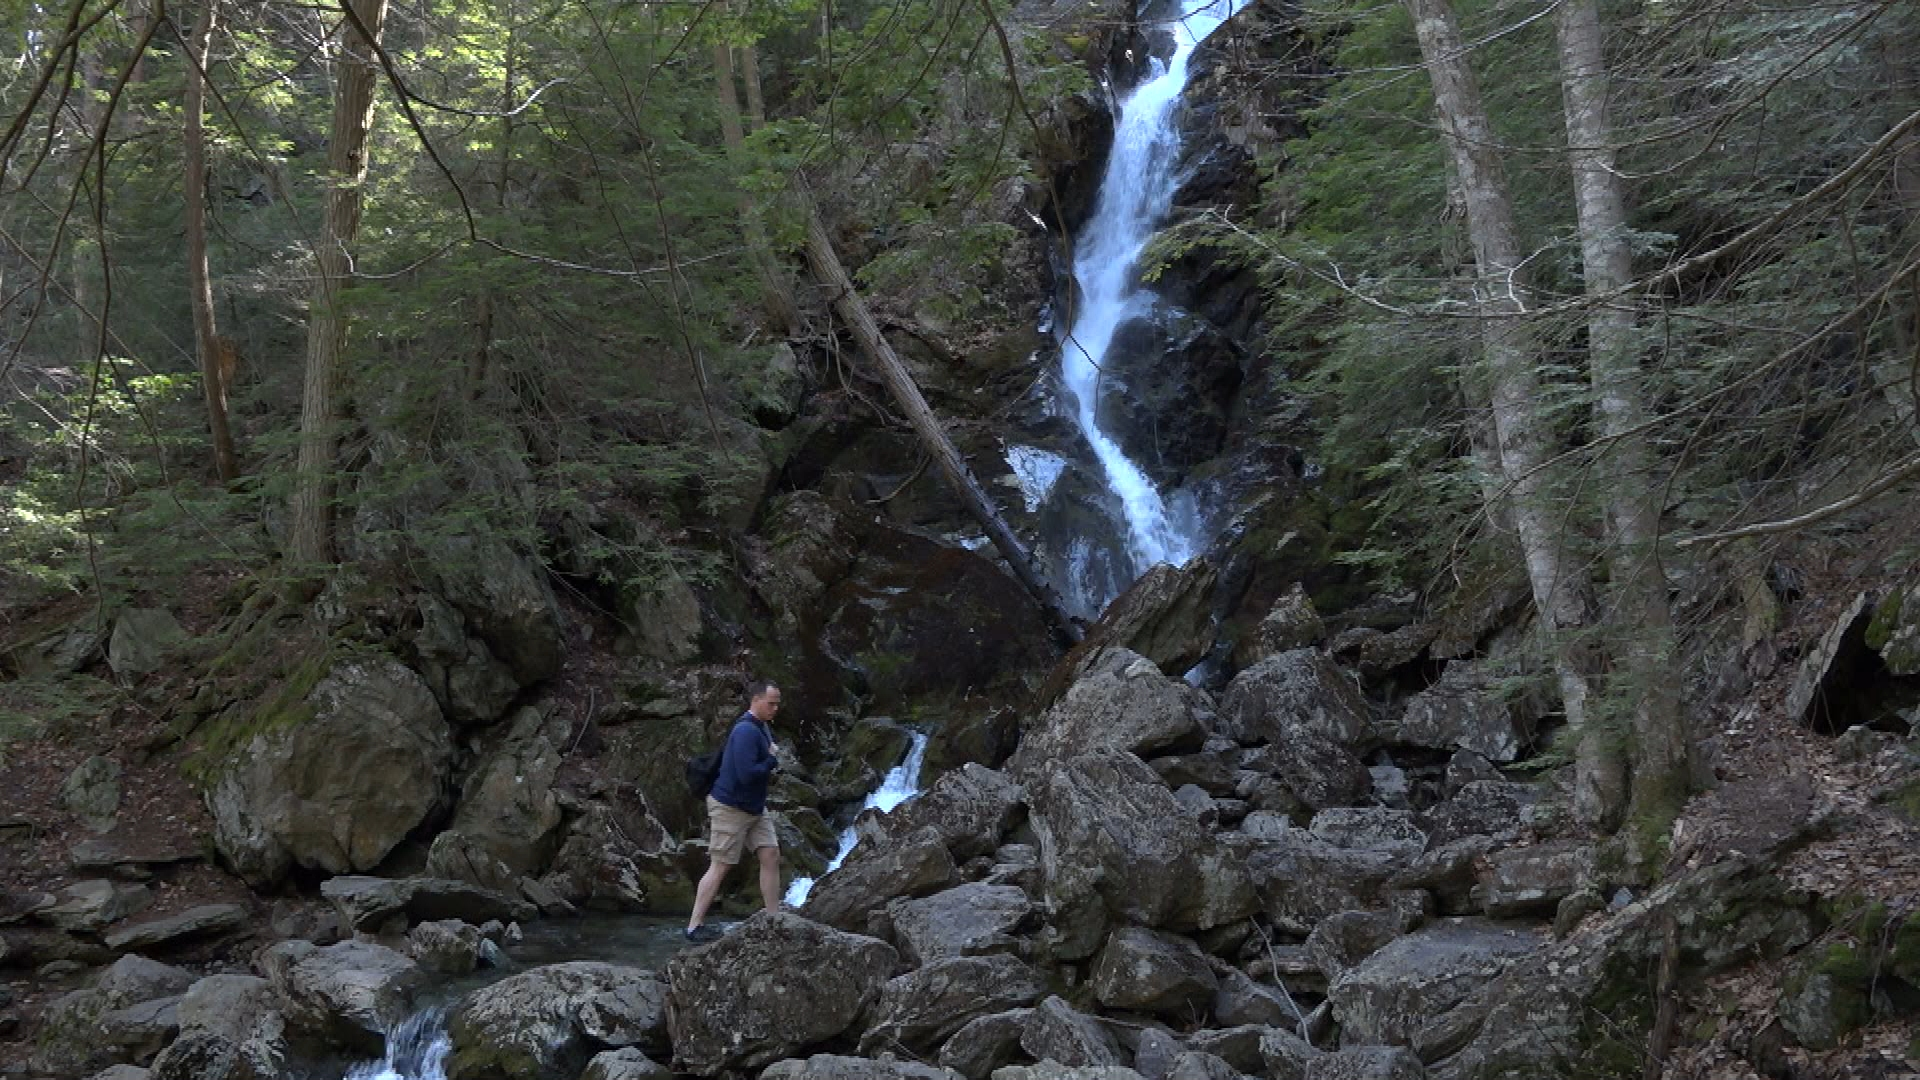 WATCH: Brian Sullivan heads to the hills for a hike in the southern Berkshires, where he meets several other hikers enjoying the great outdoors.